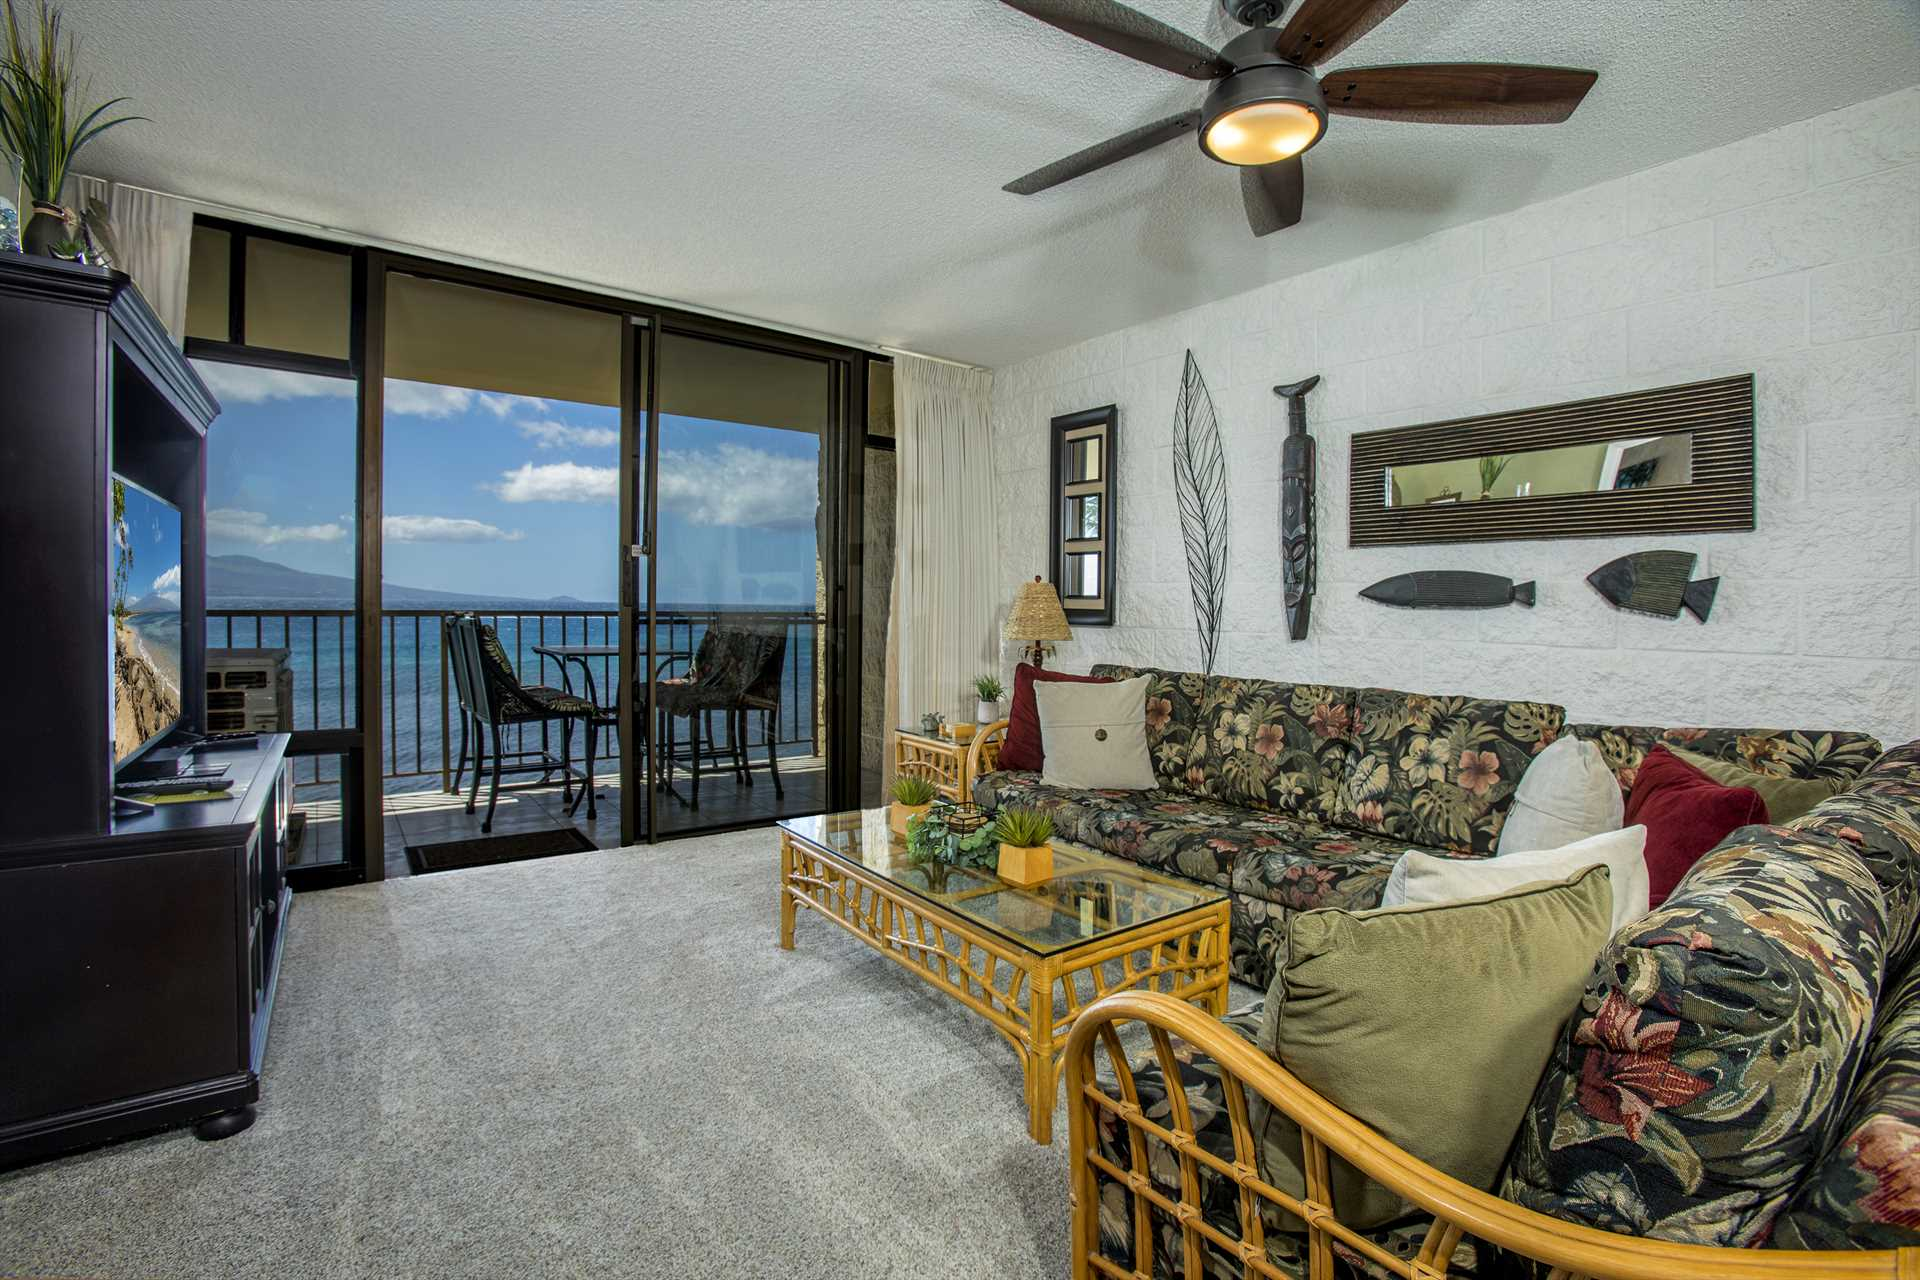 You will experience ocean views from the living room